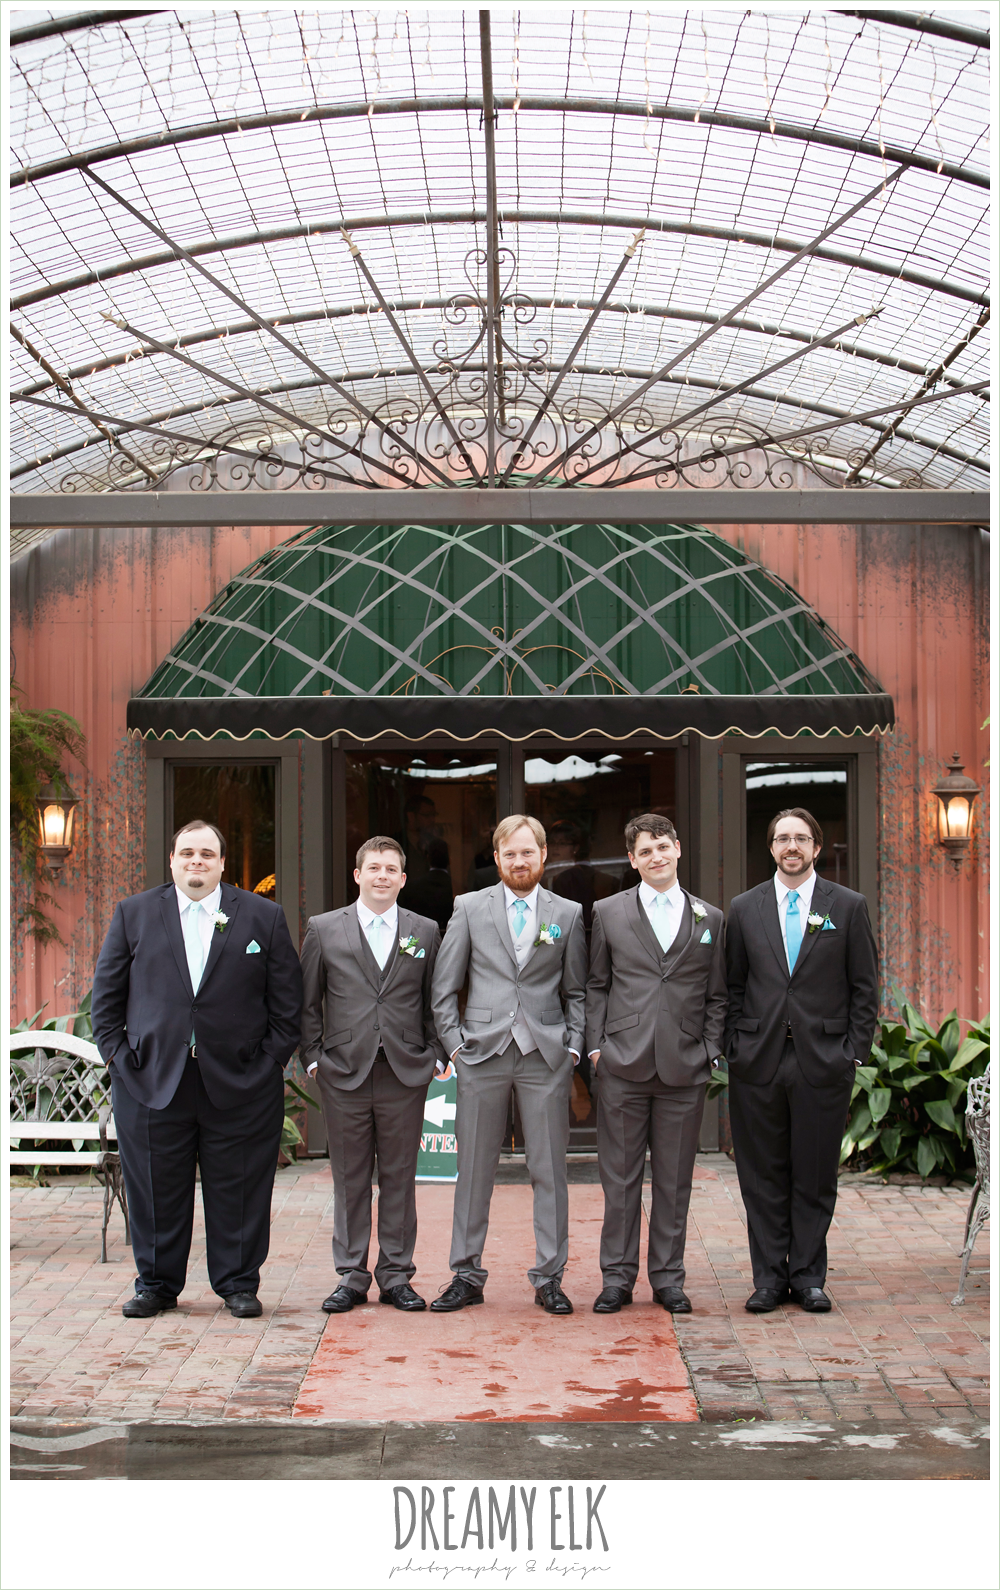 groom in gray suit, groomsmen in different suits, le jardin winter wedding {dreamy elk photography and design}